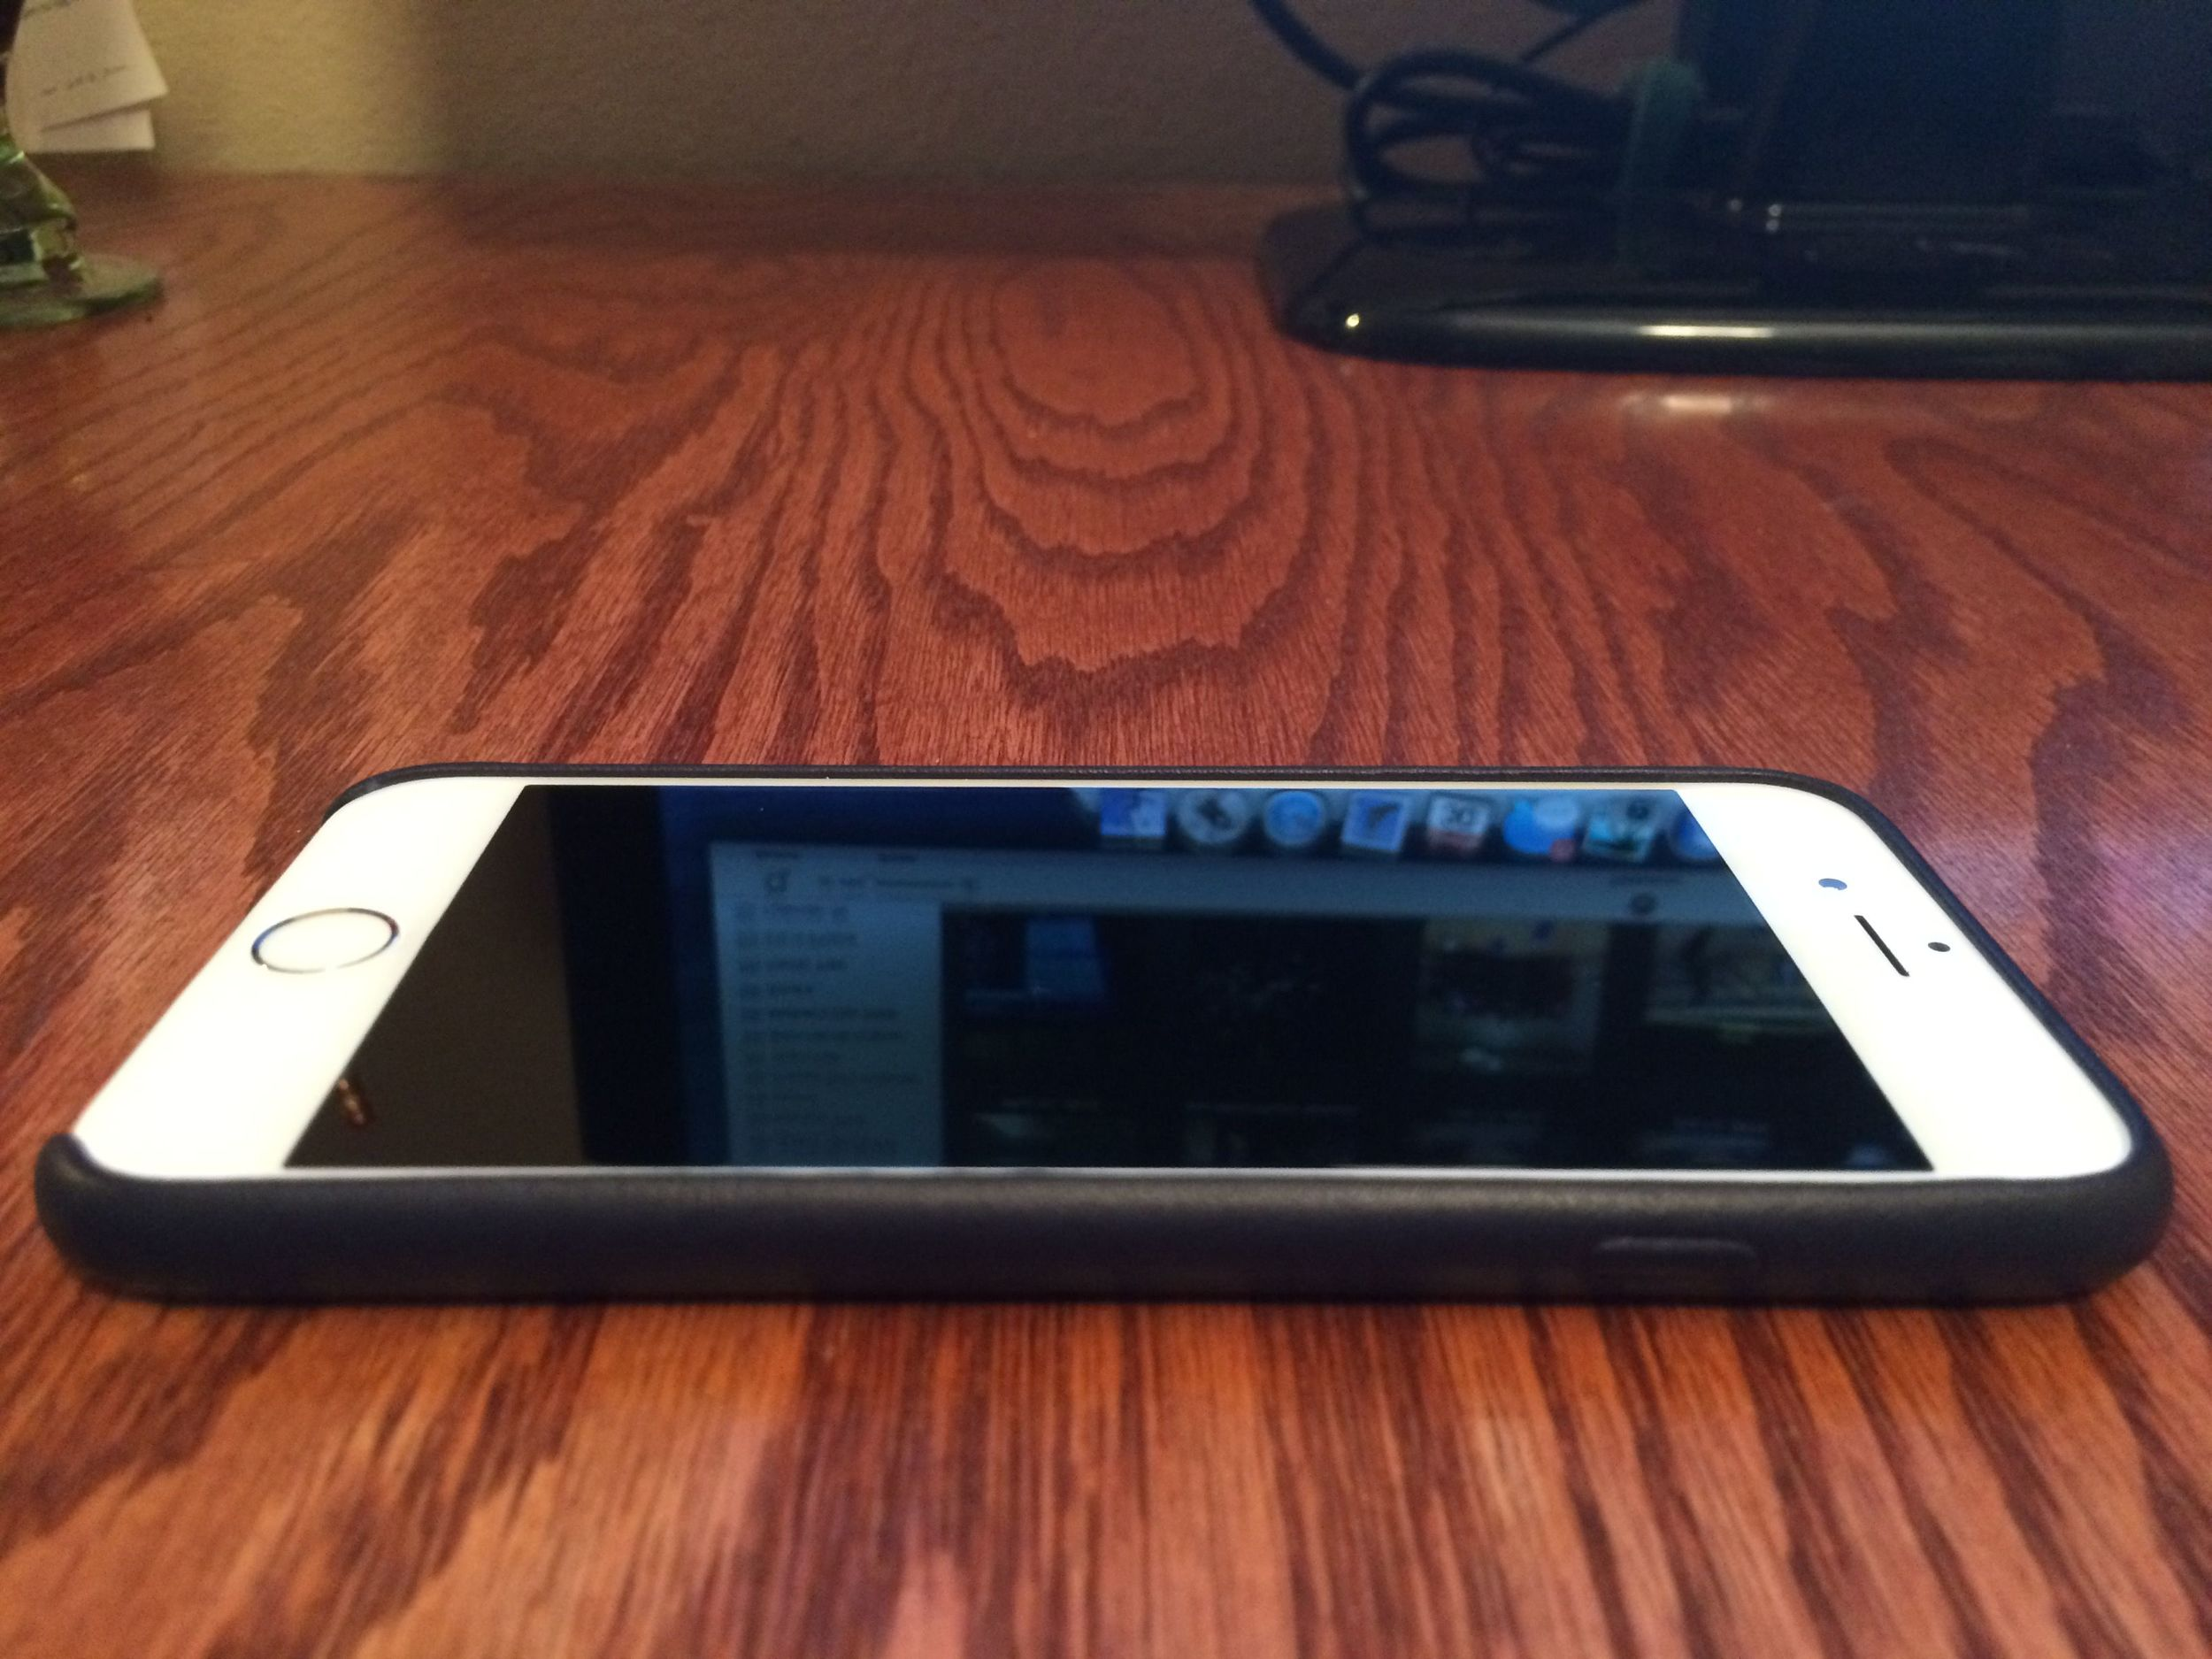 2014-10-01 - iphone 6 case3.jpg